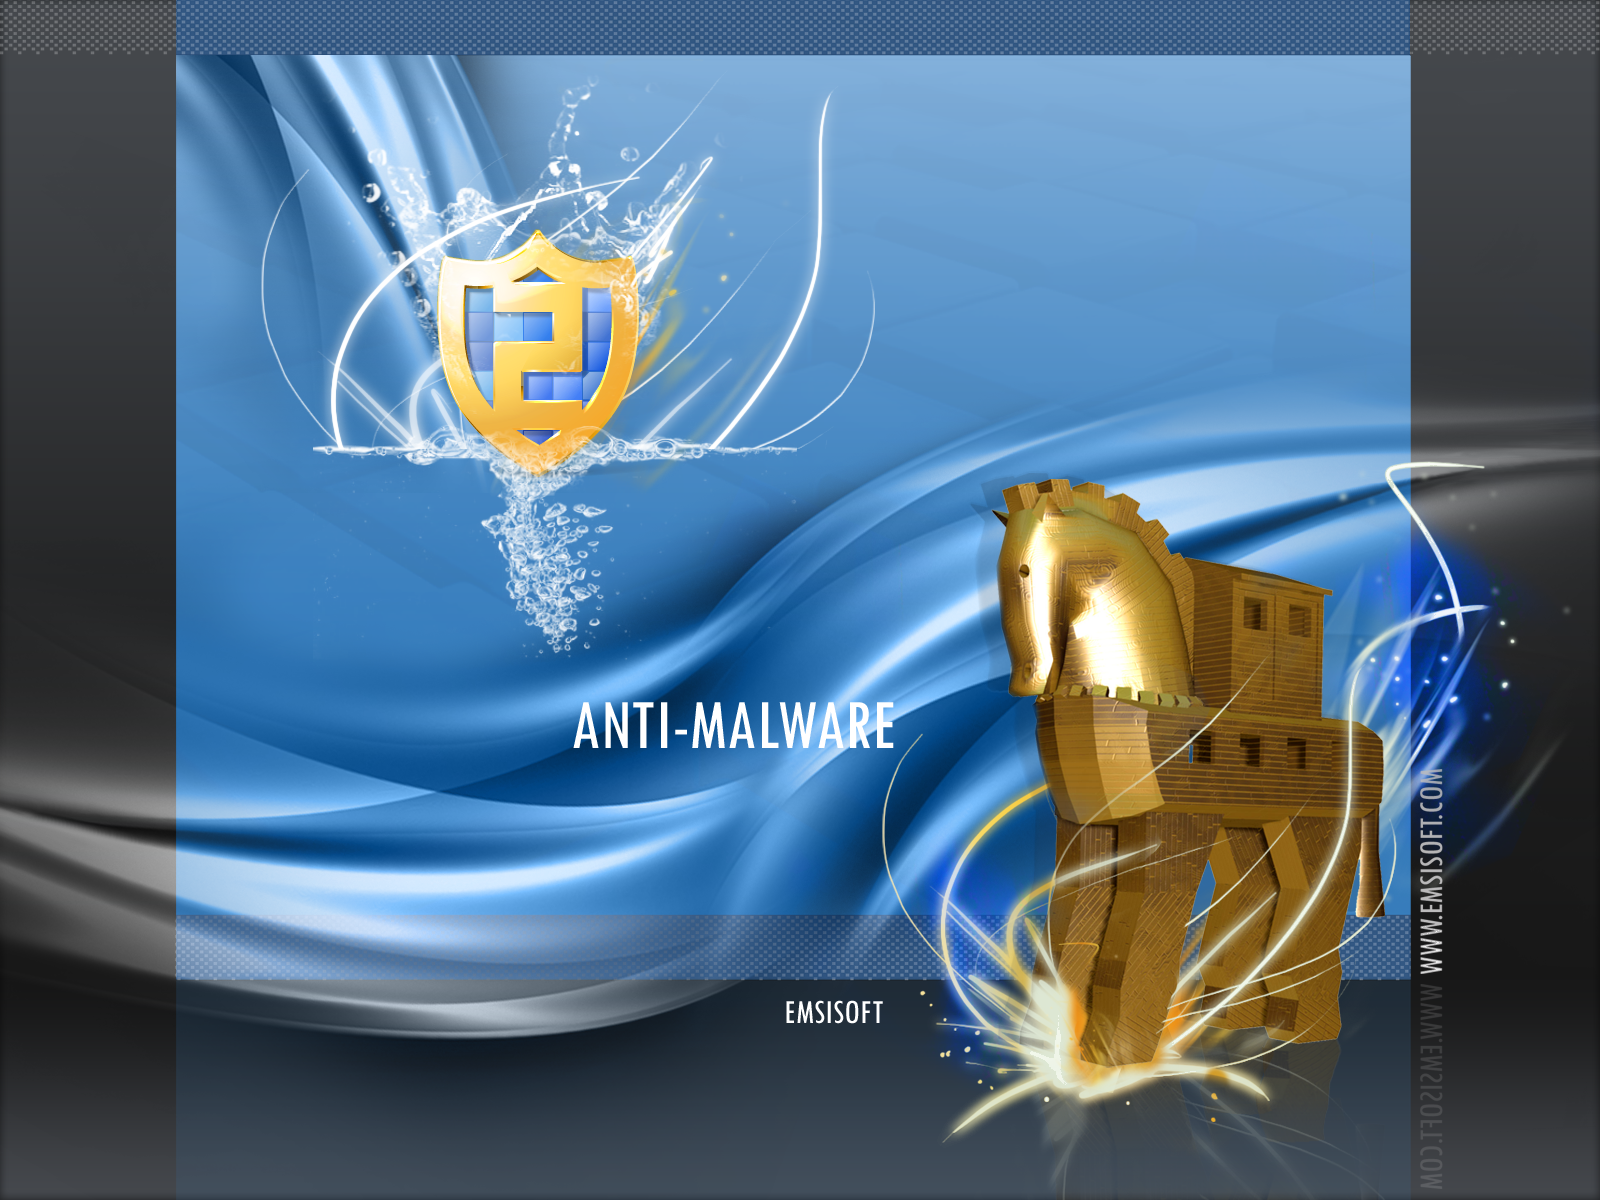 Download Emisoft AntiMawlare free